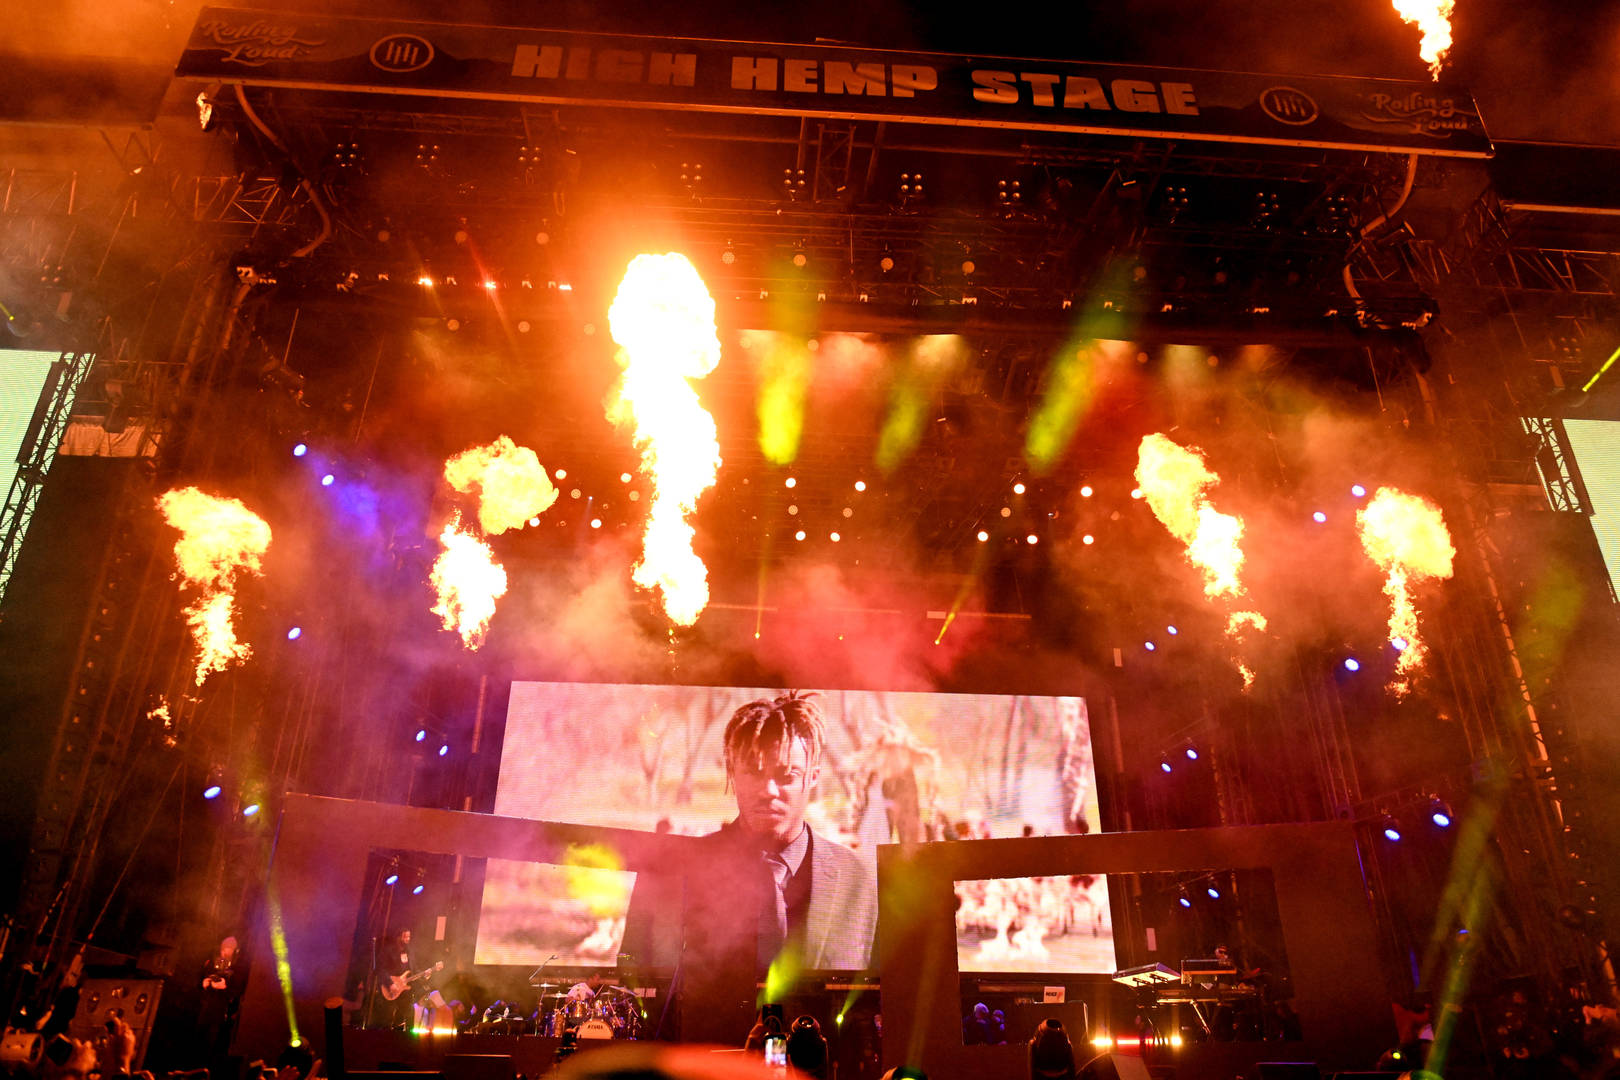 Rolling Loud pays tribute to the late rapper Juice WRLD onstage during day 2 of the Rolling Loud Festival at Banc of California Stadium on December 15, 2019 in Los Angeles, California.